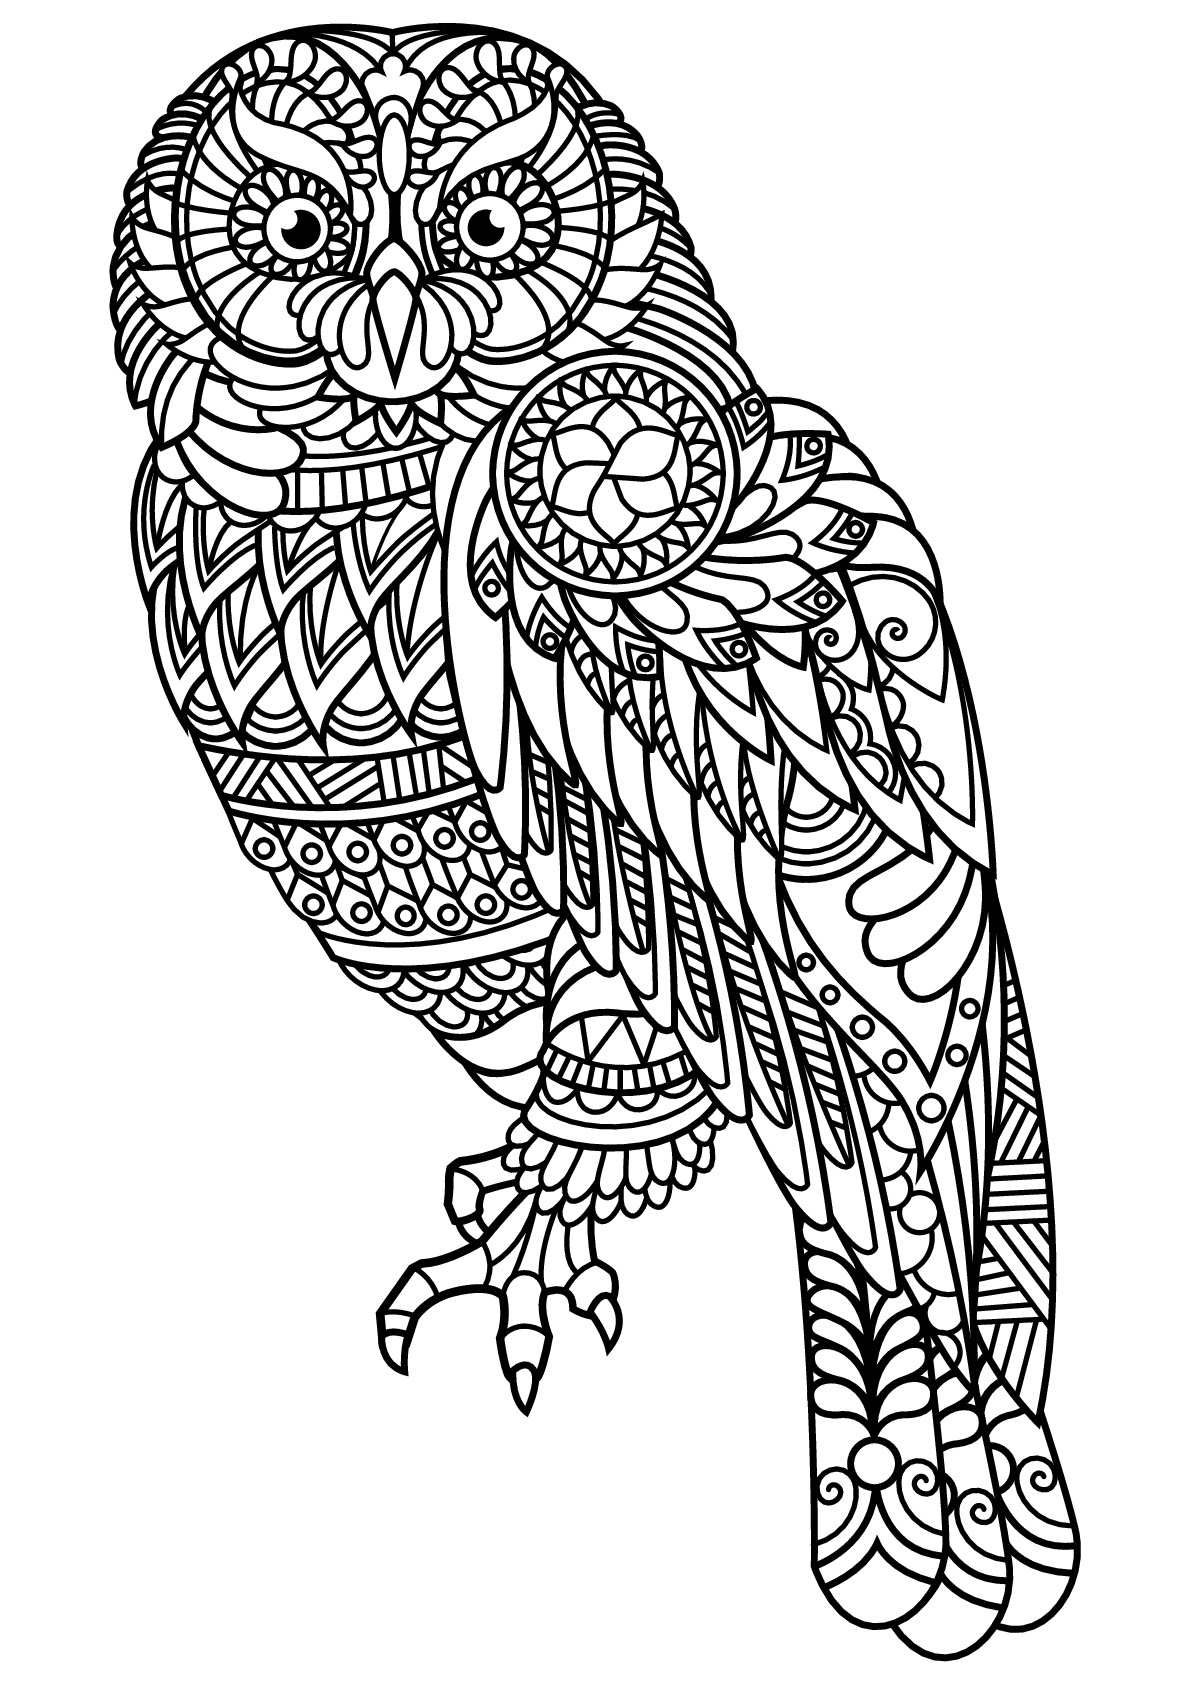 animals drawings to color free book owl owls adult coloring pages color drawings animals to